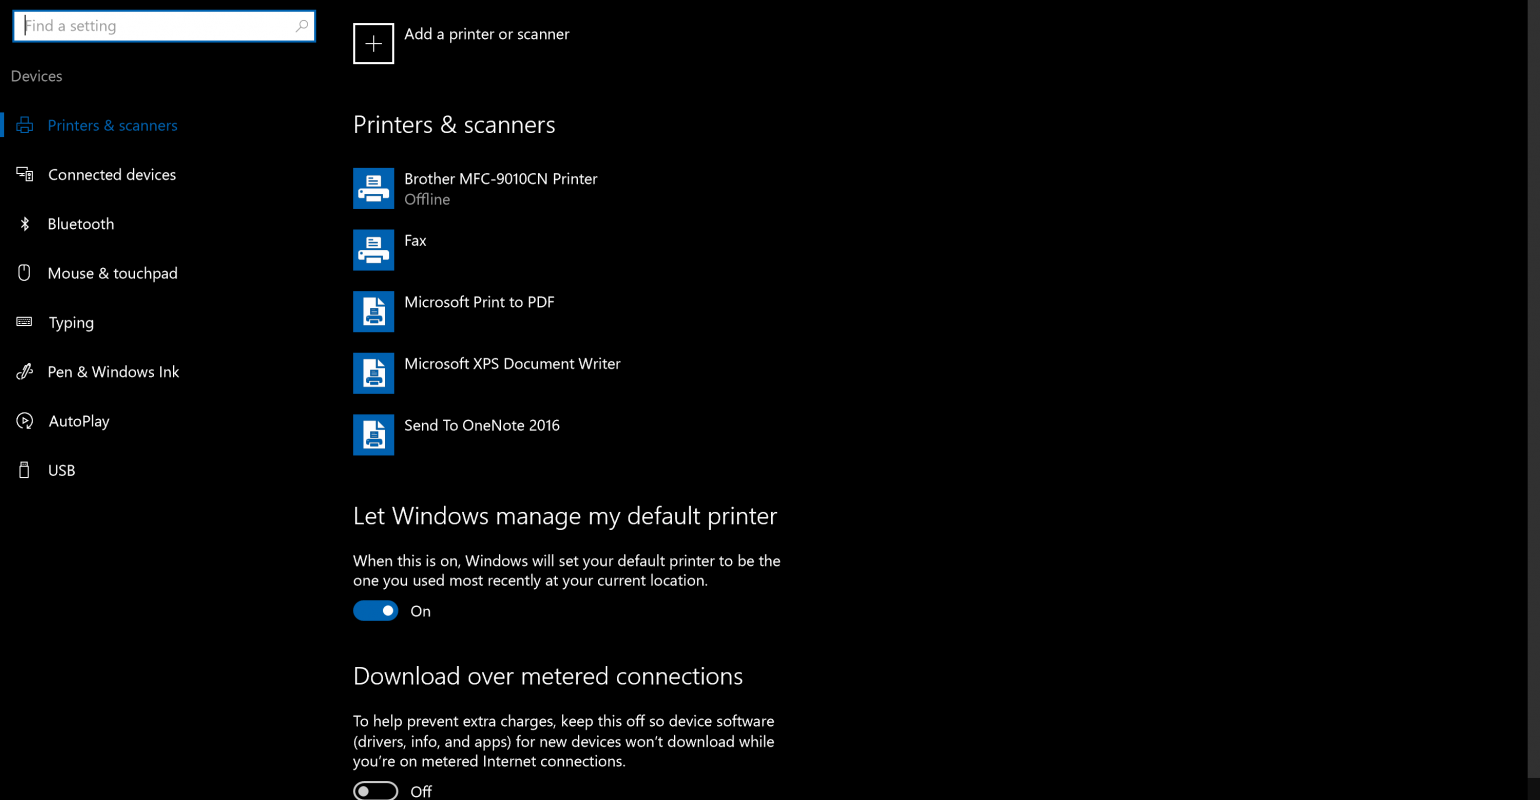 Hardware | Manually add a printer to your Windows 10 system